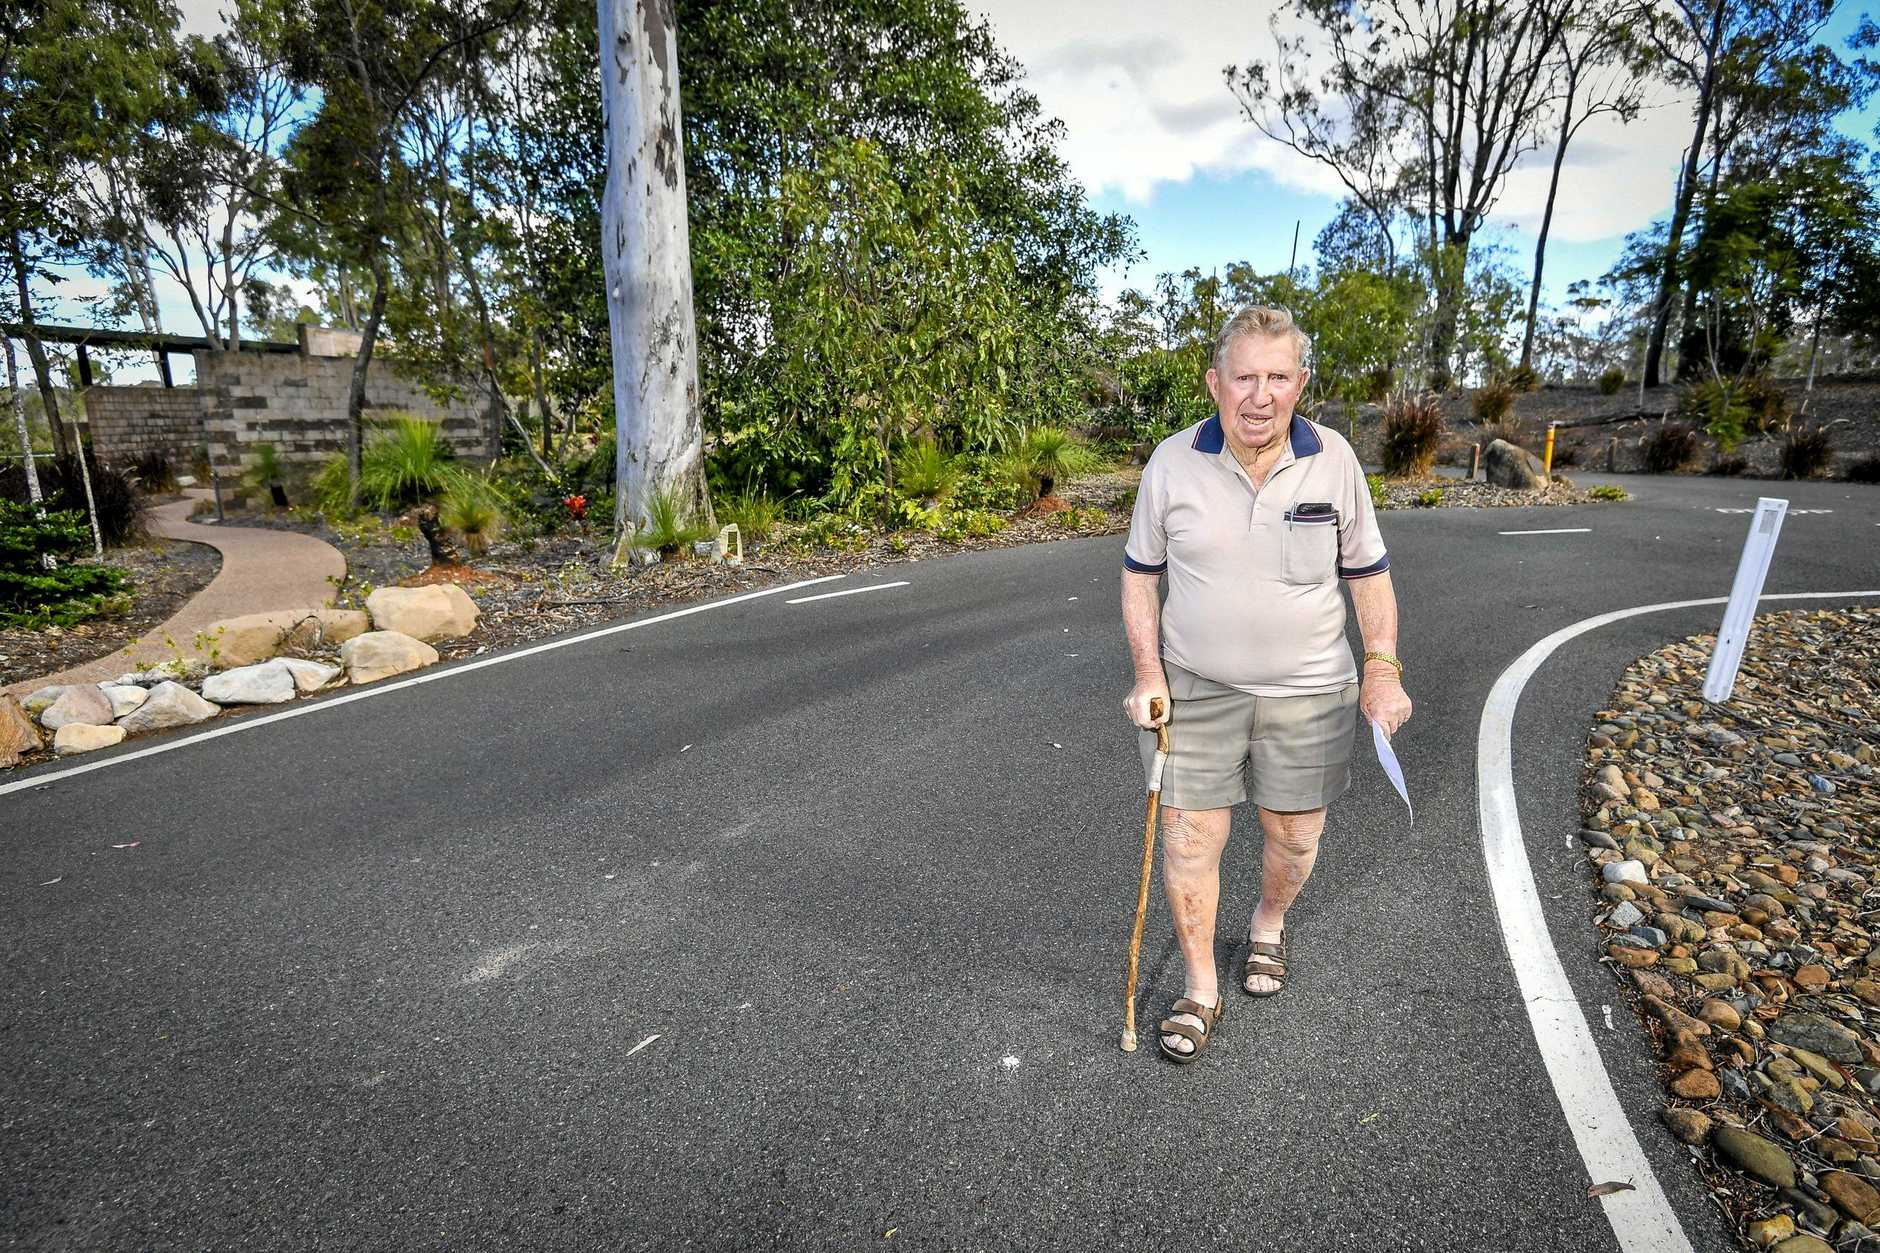 Boyne Island resident Max Ricketts wants Gladstone Regional Council to help implement a plan that will make it easier for elderly and incapacitated reisendts to access the chapel at Boyne Tannum Memorial Parklands Crematorium Chapel, which sits several hundred metres from the nearest carpark.